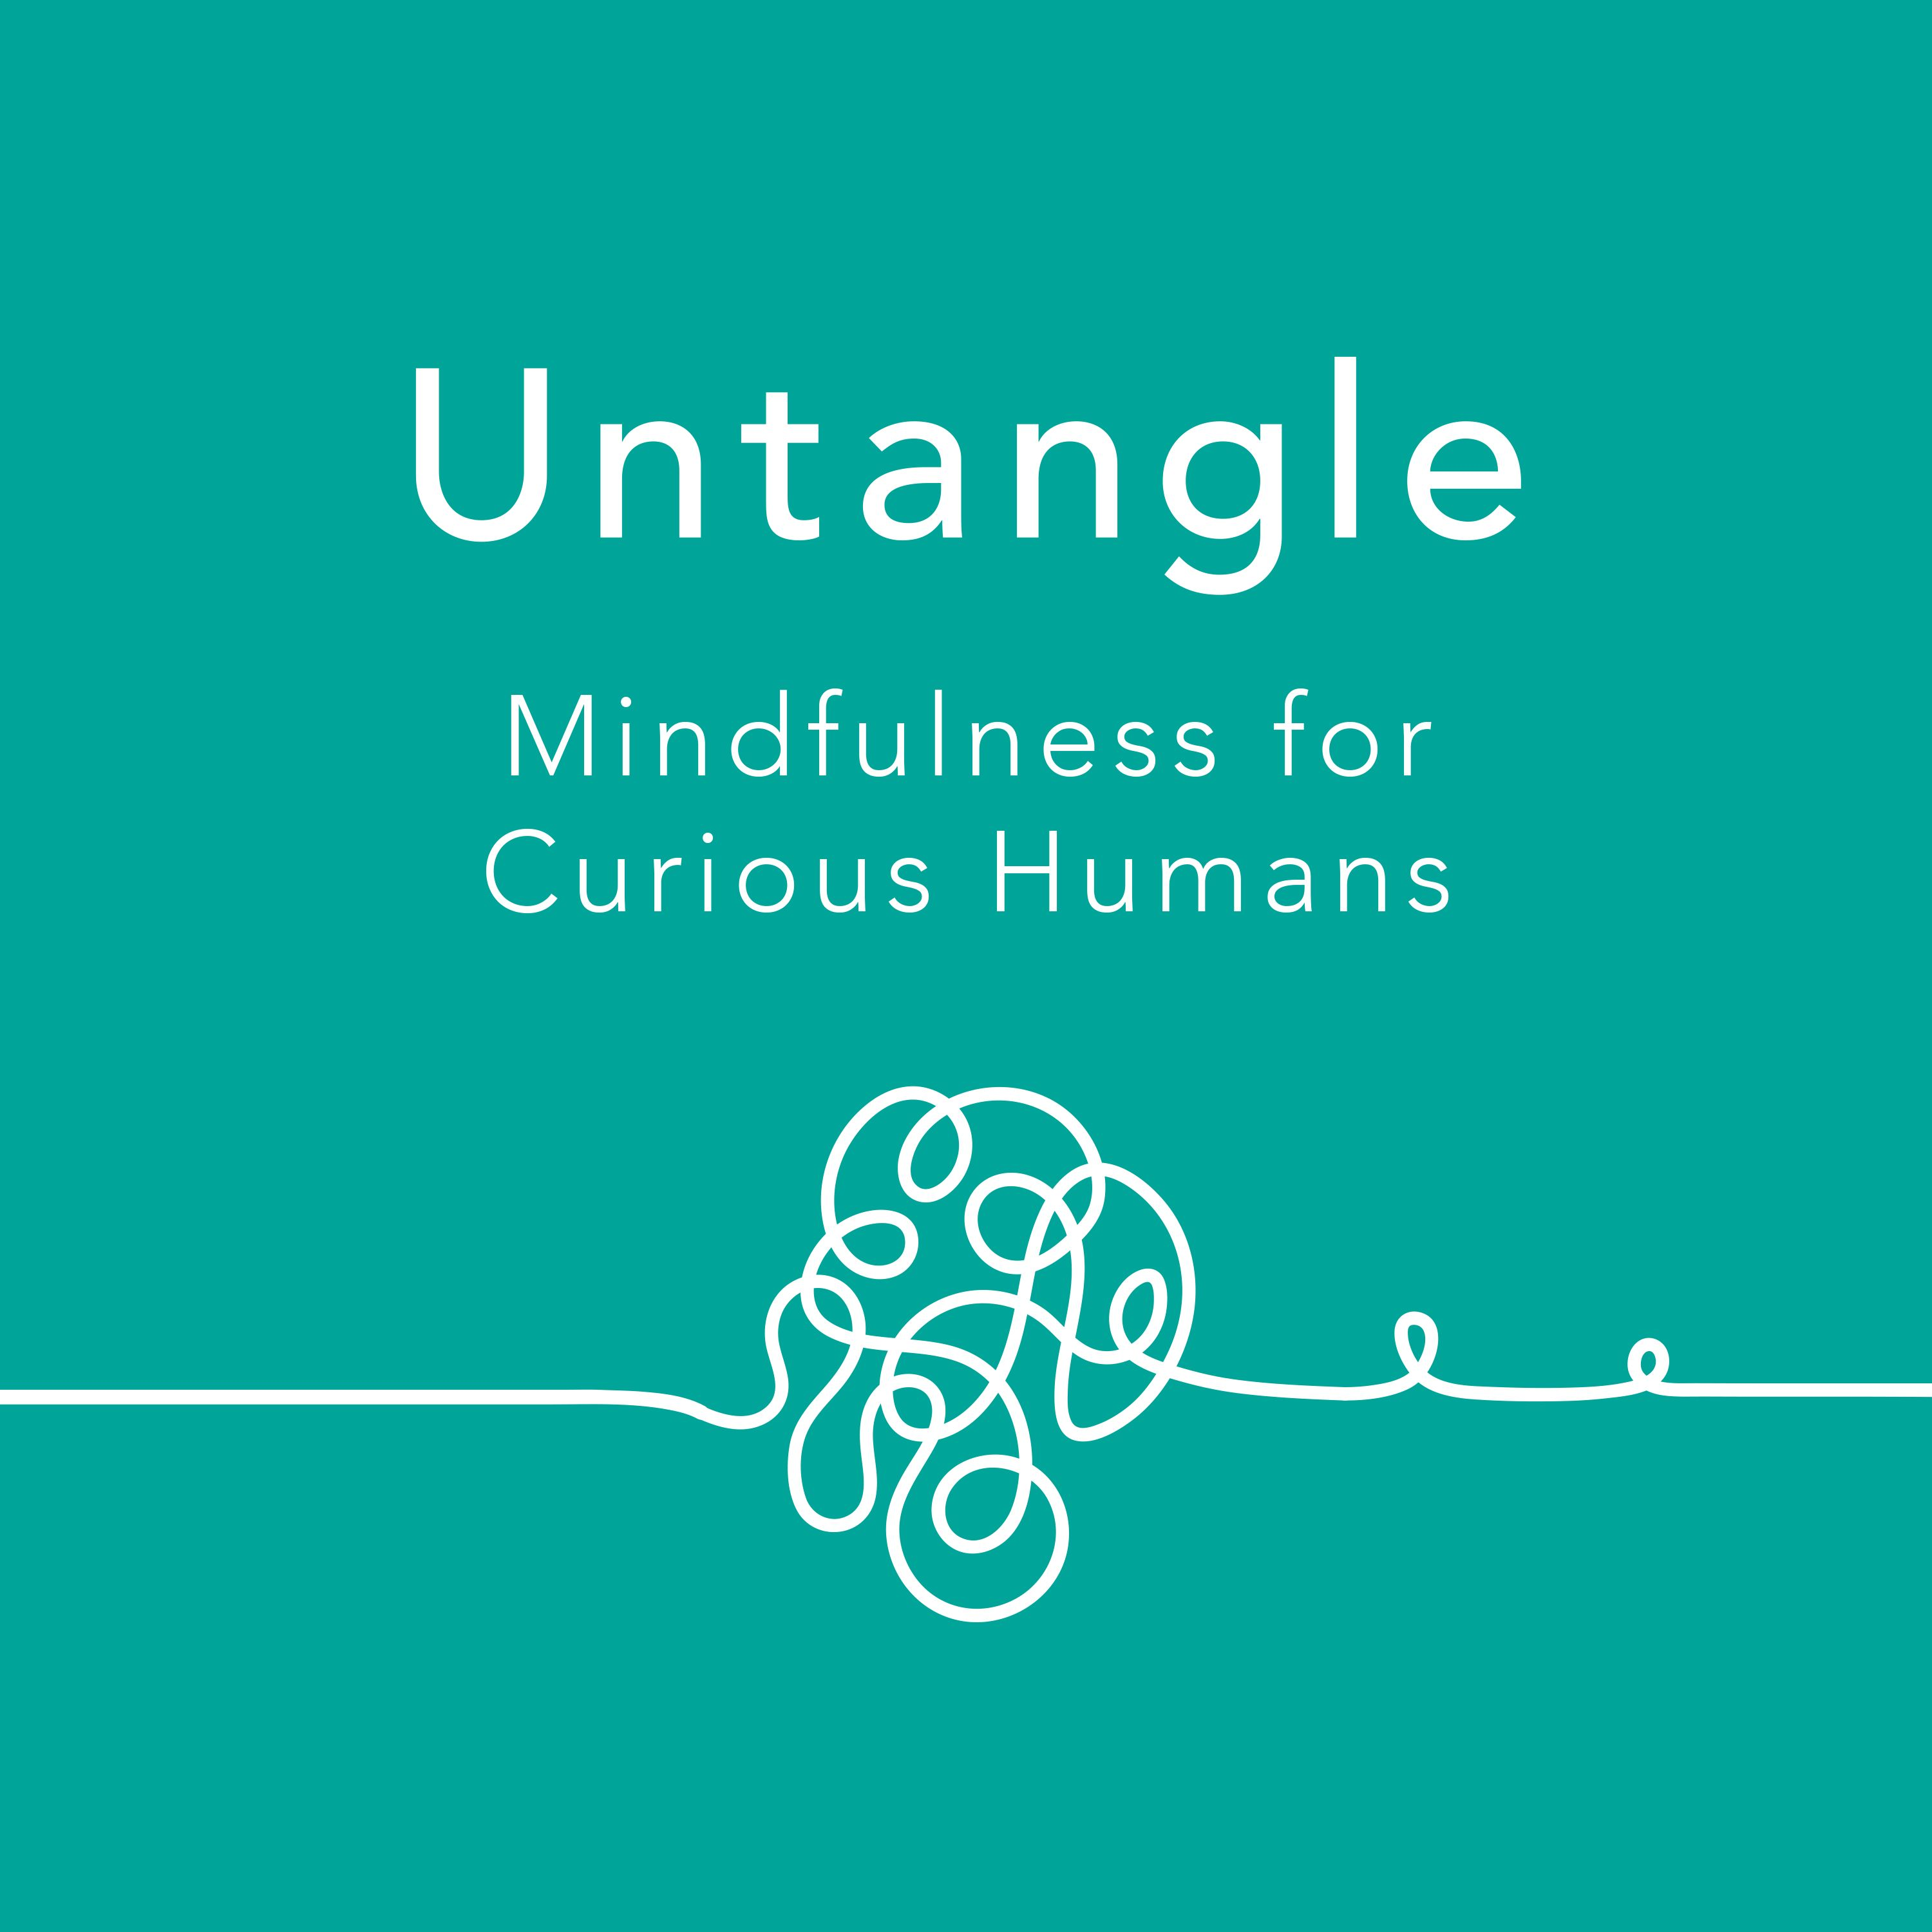 Sharon Salzberg - Mindfulness to Heal Ourselves and The World